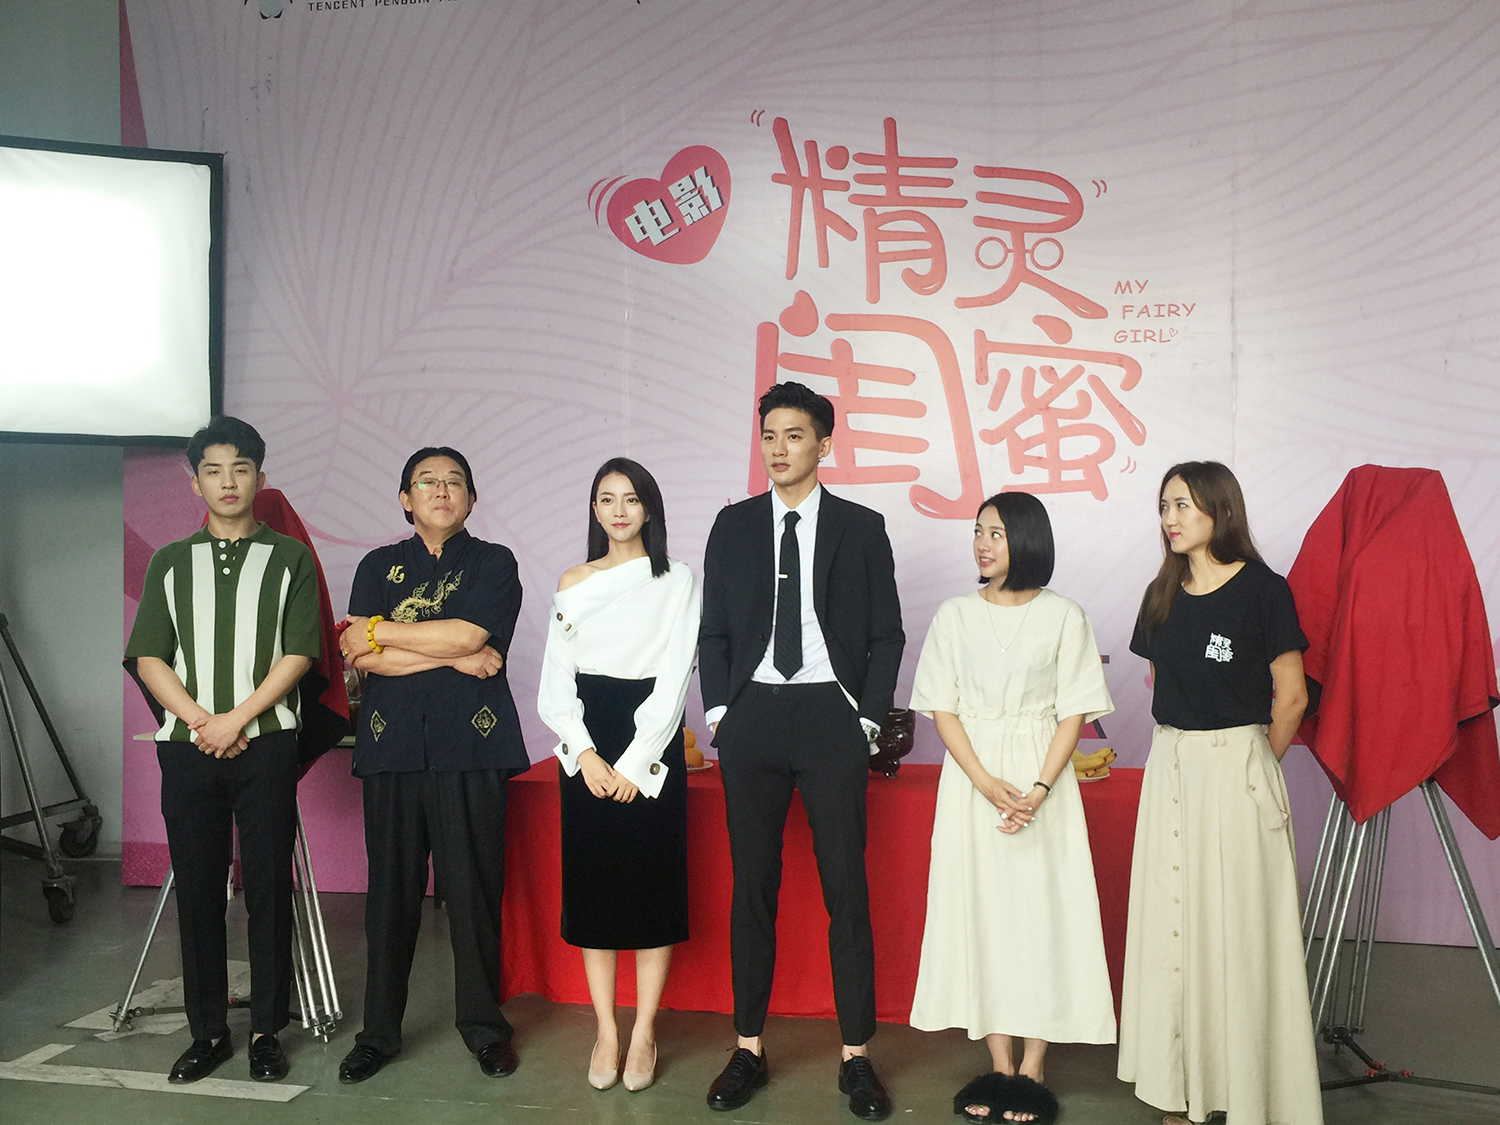 Fairies girl begins shooting little jia zhang xi and ghost cooperation exciting expectations!